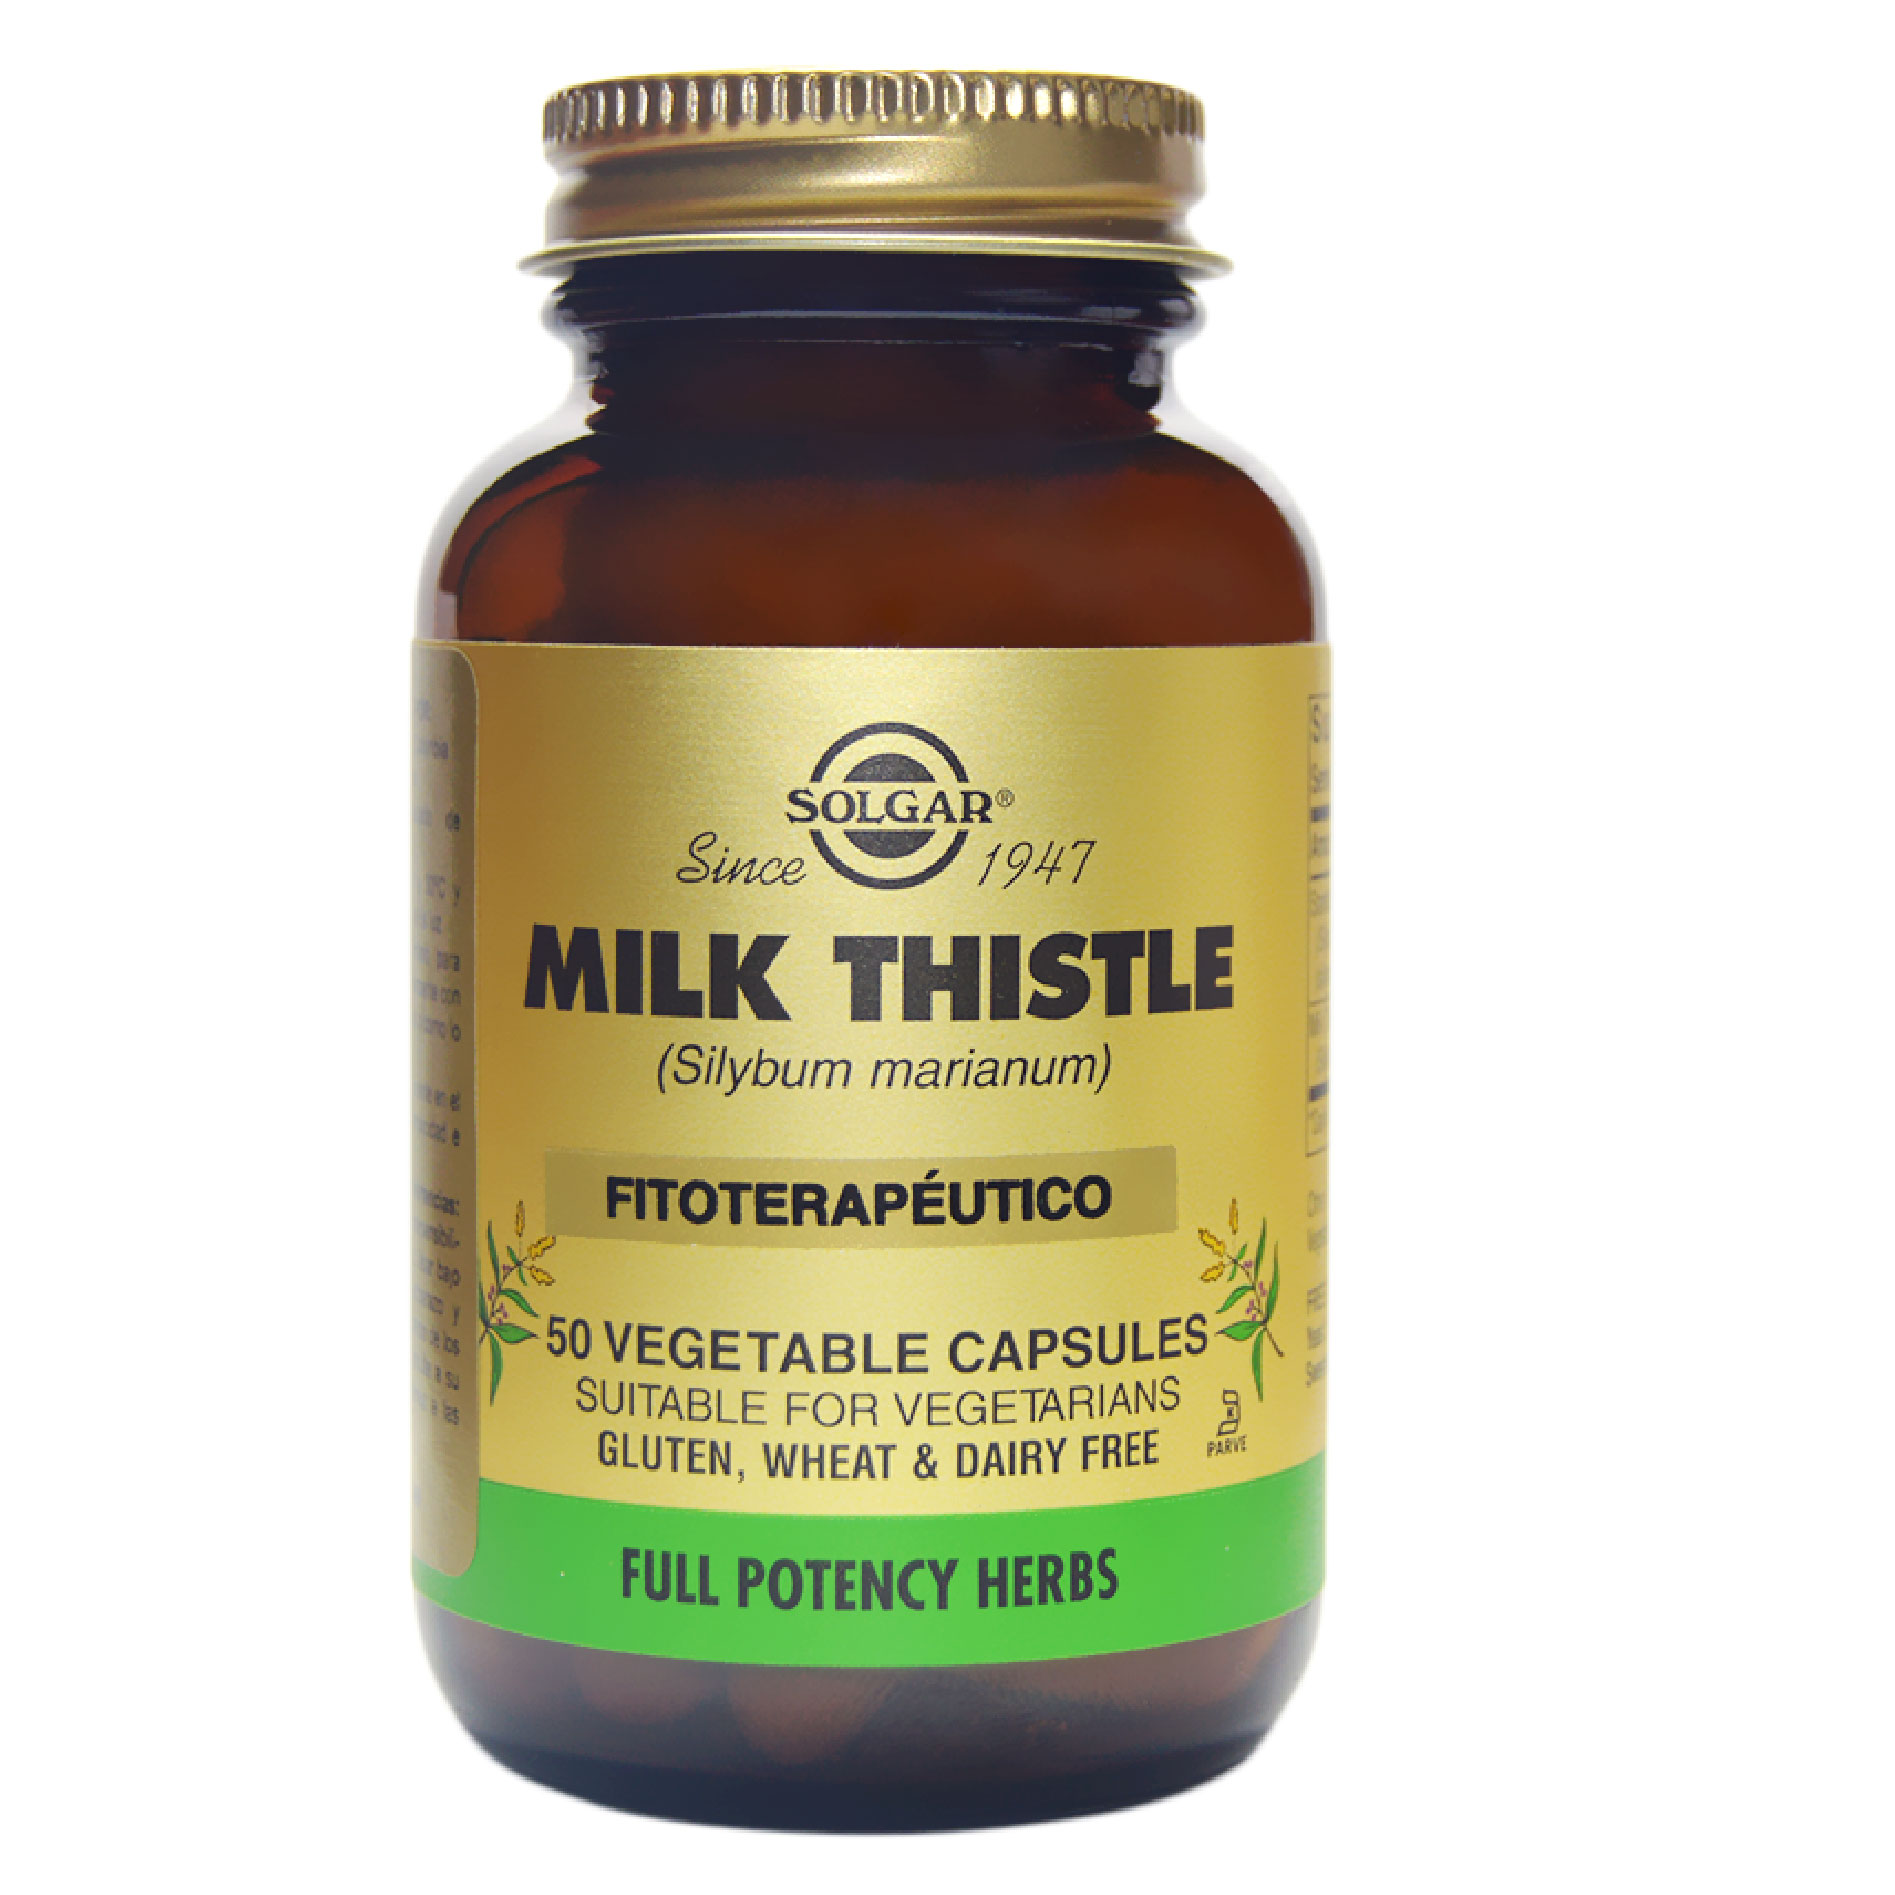 FP MILK THISTLE 50 CAP